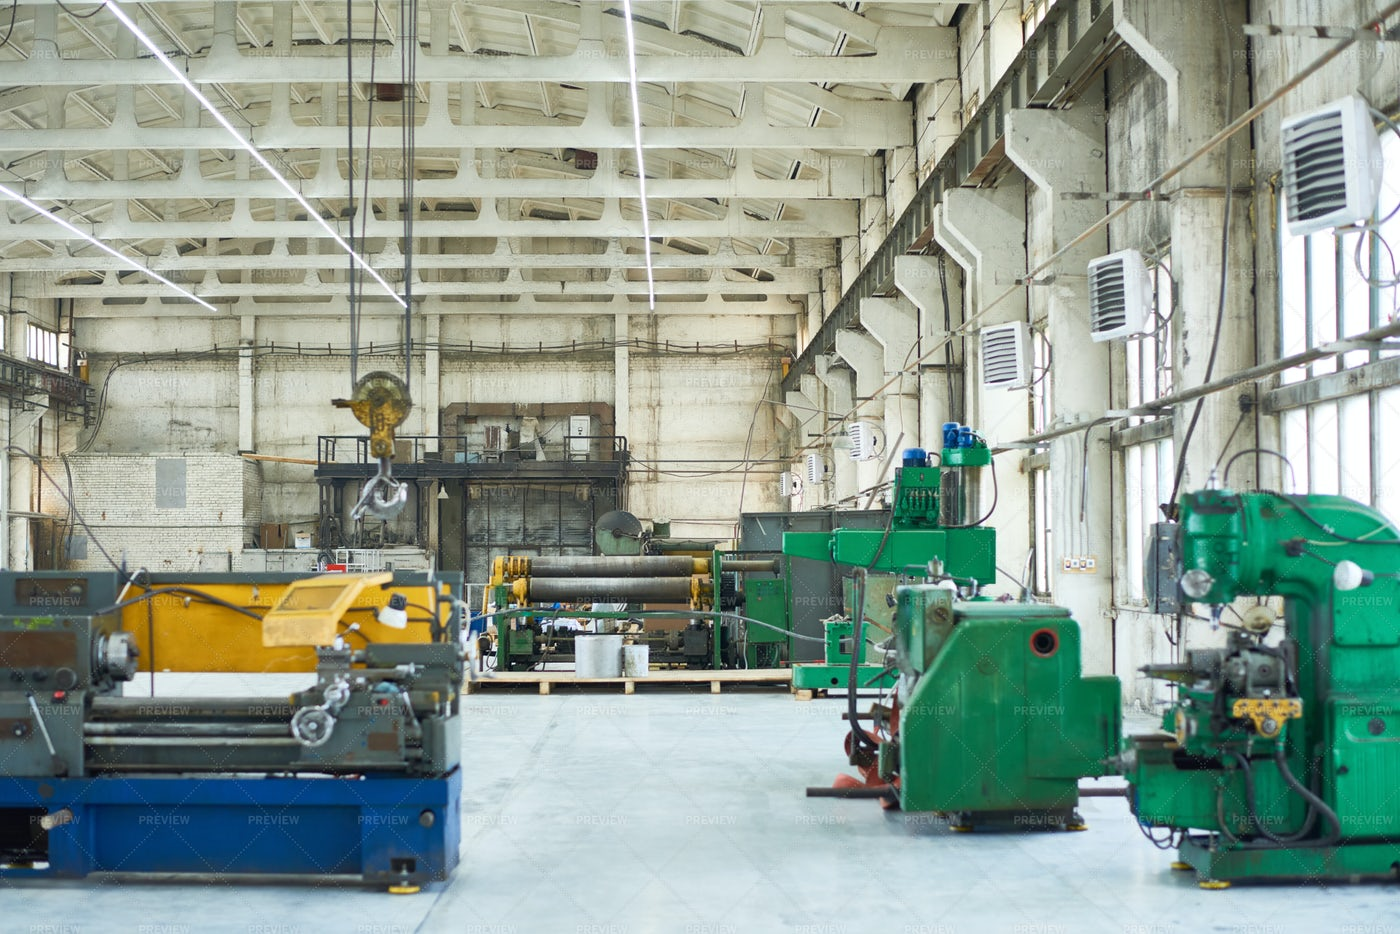 Modern Industrial Workshop With...: Stock Photos